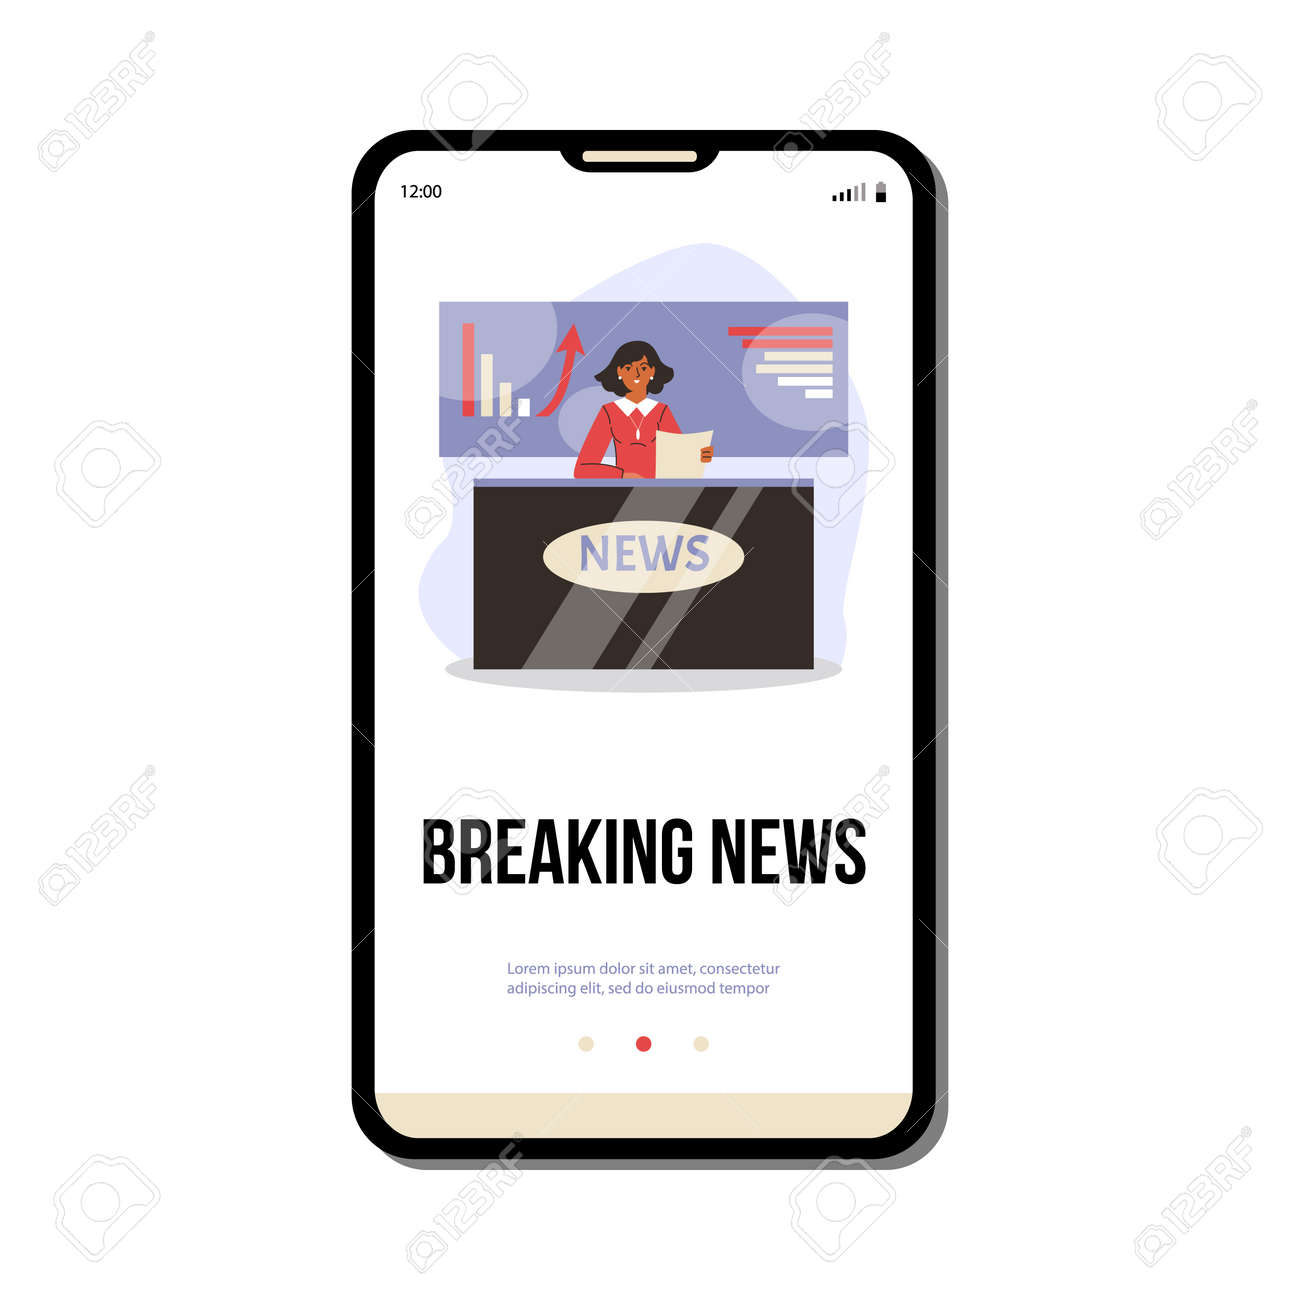 Mobile phone screen with live broadcasting breaking economic news from tv studio - 173358202